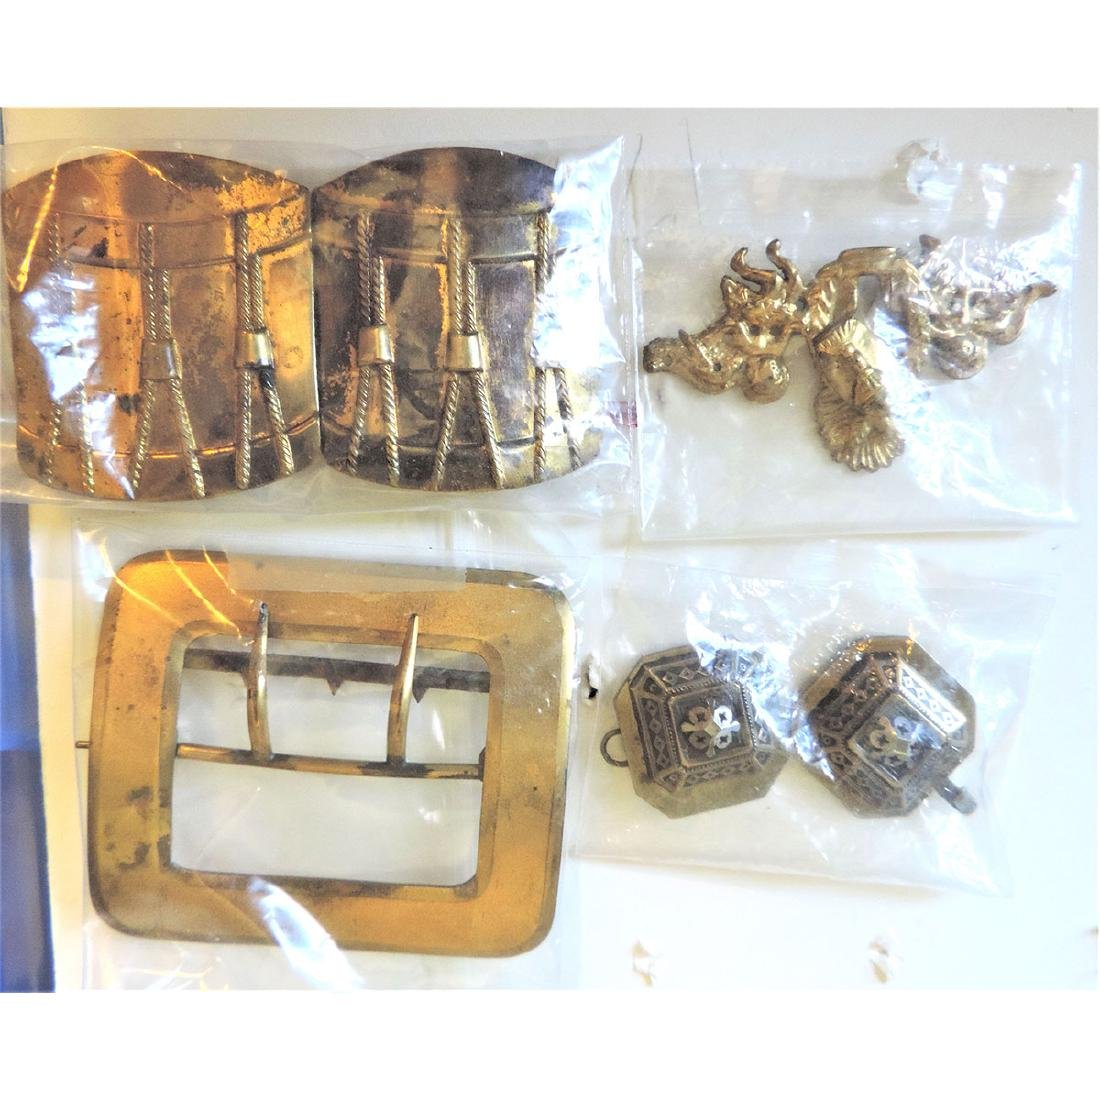 4 BRASS BUCKLES INCLUDING LARGE DRUM